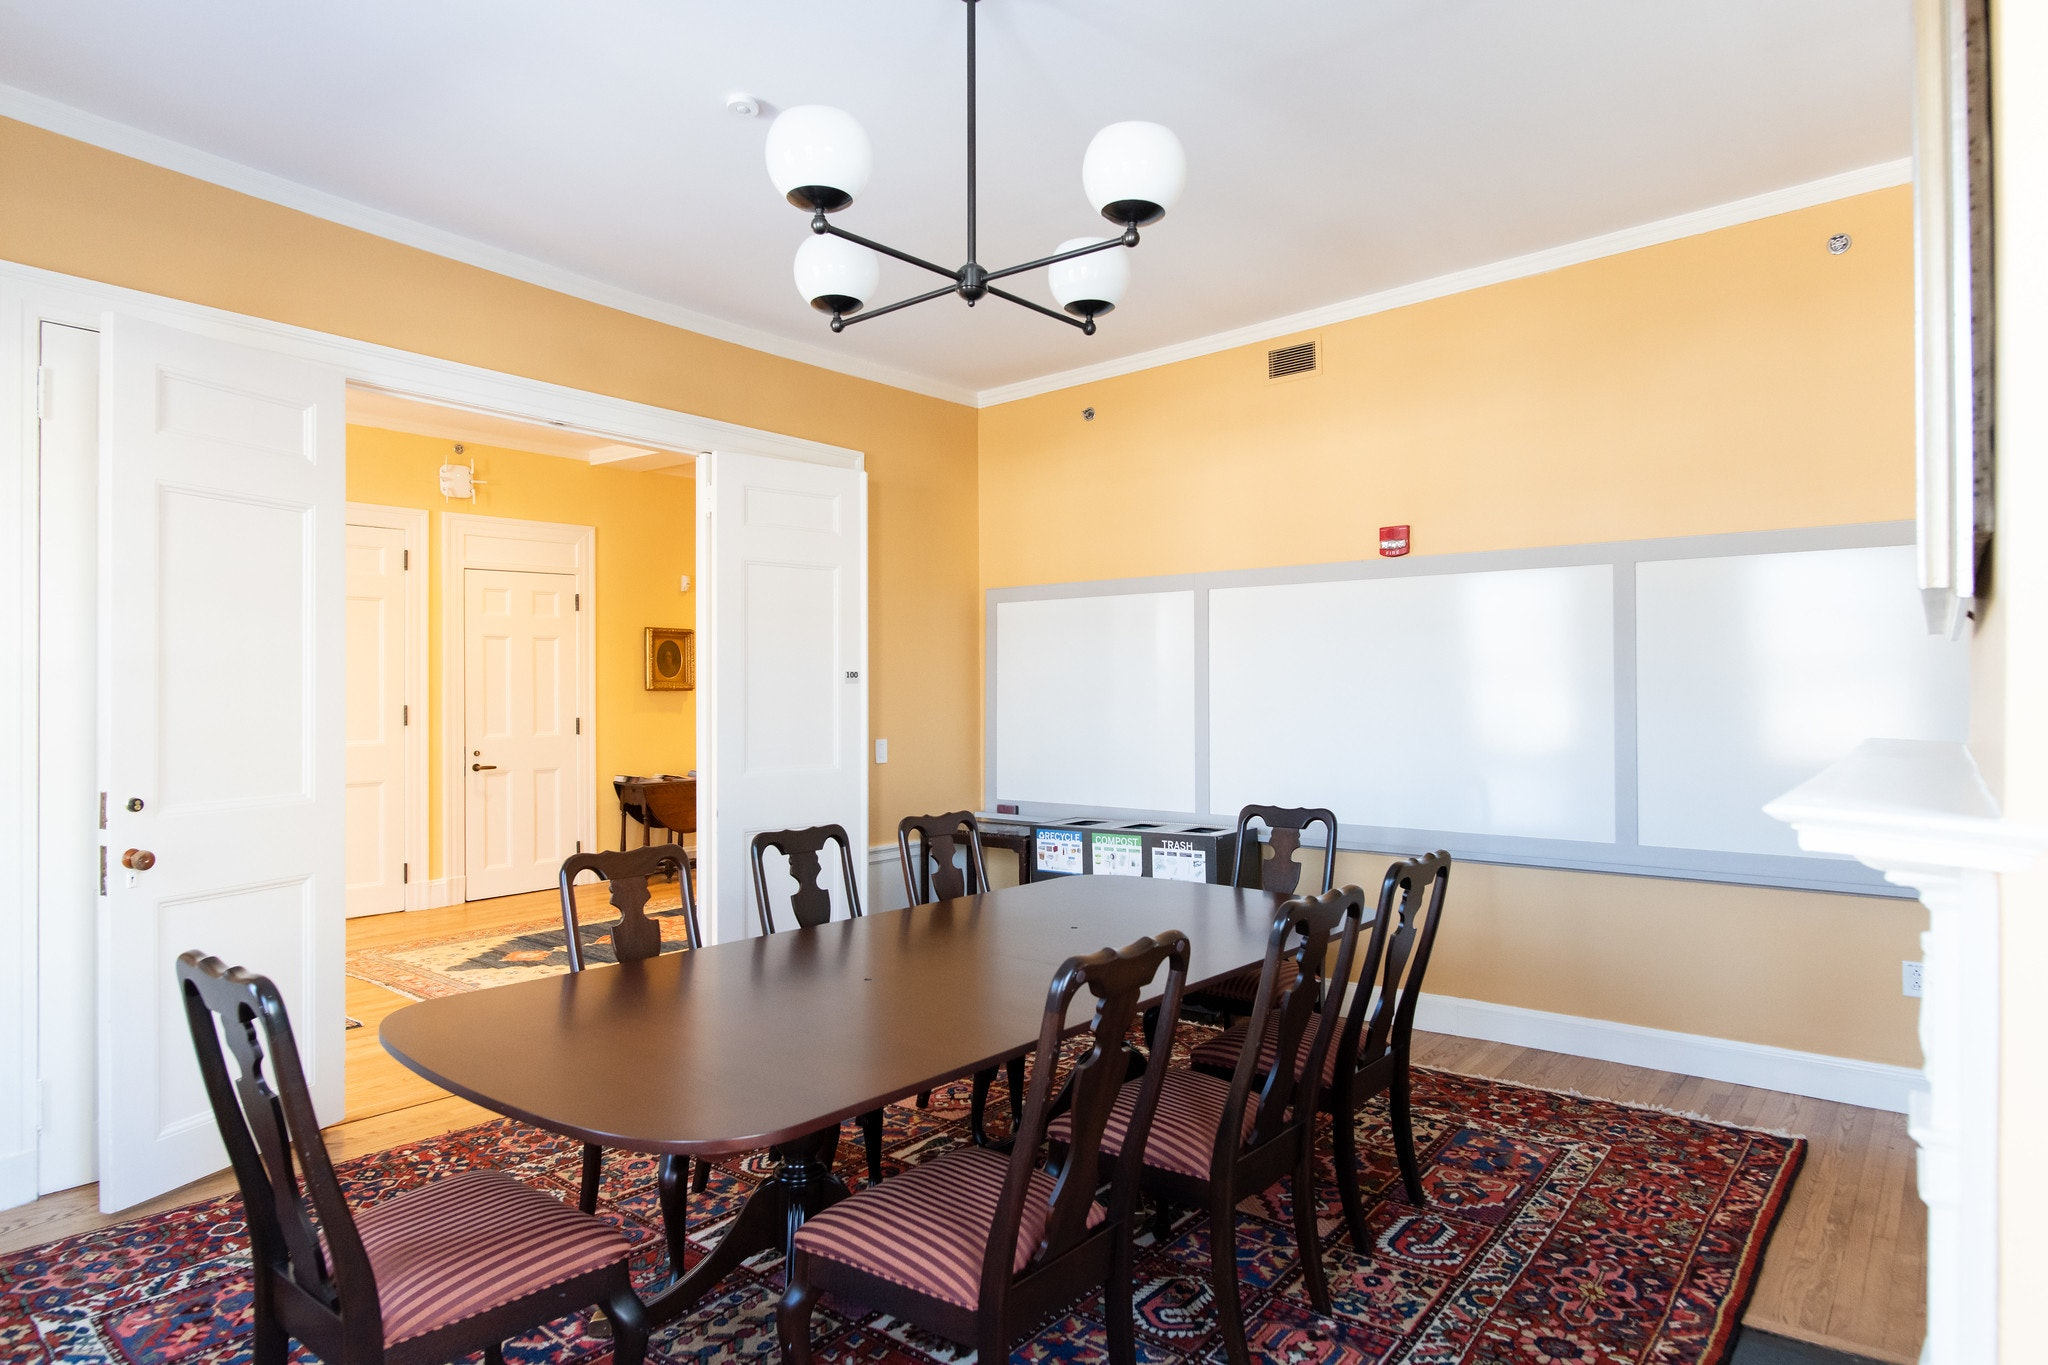 Another angle of dark brown wood conference table with 8 seats lined around. Entrance is in view, with two white doors open, and 3 white boards mounted to the wall behind the table. Walls are yellow.